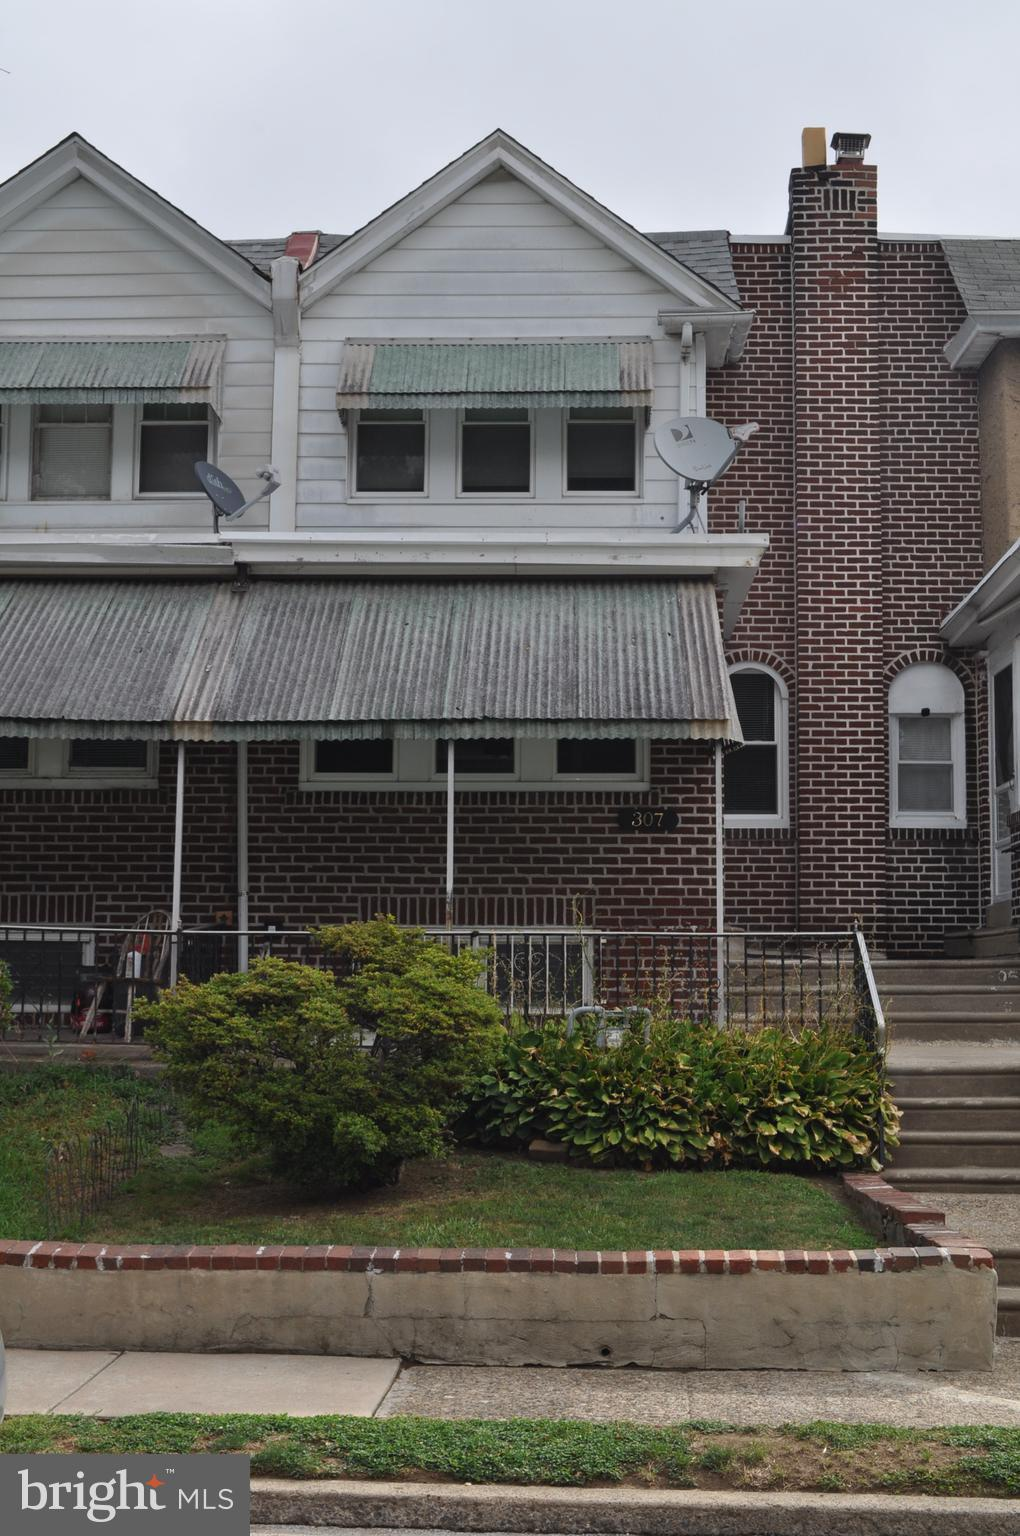 Situated near Collingdale Park, this freshly painted  three bedroom brick townhouse  features new roof (2020), replacement windows, electric fireplace, updated bathroom, and first floor bonus room. Make this house your home today!